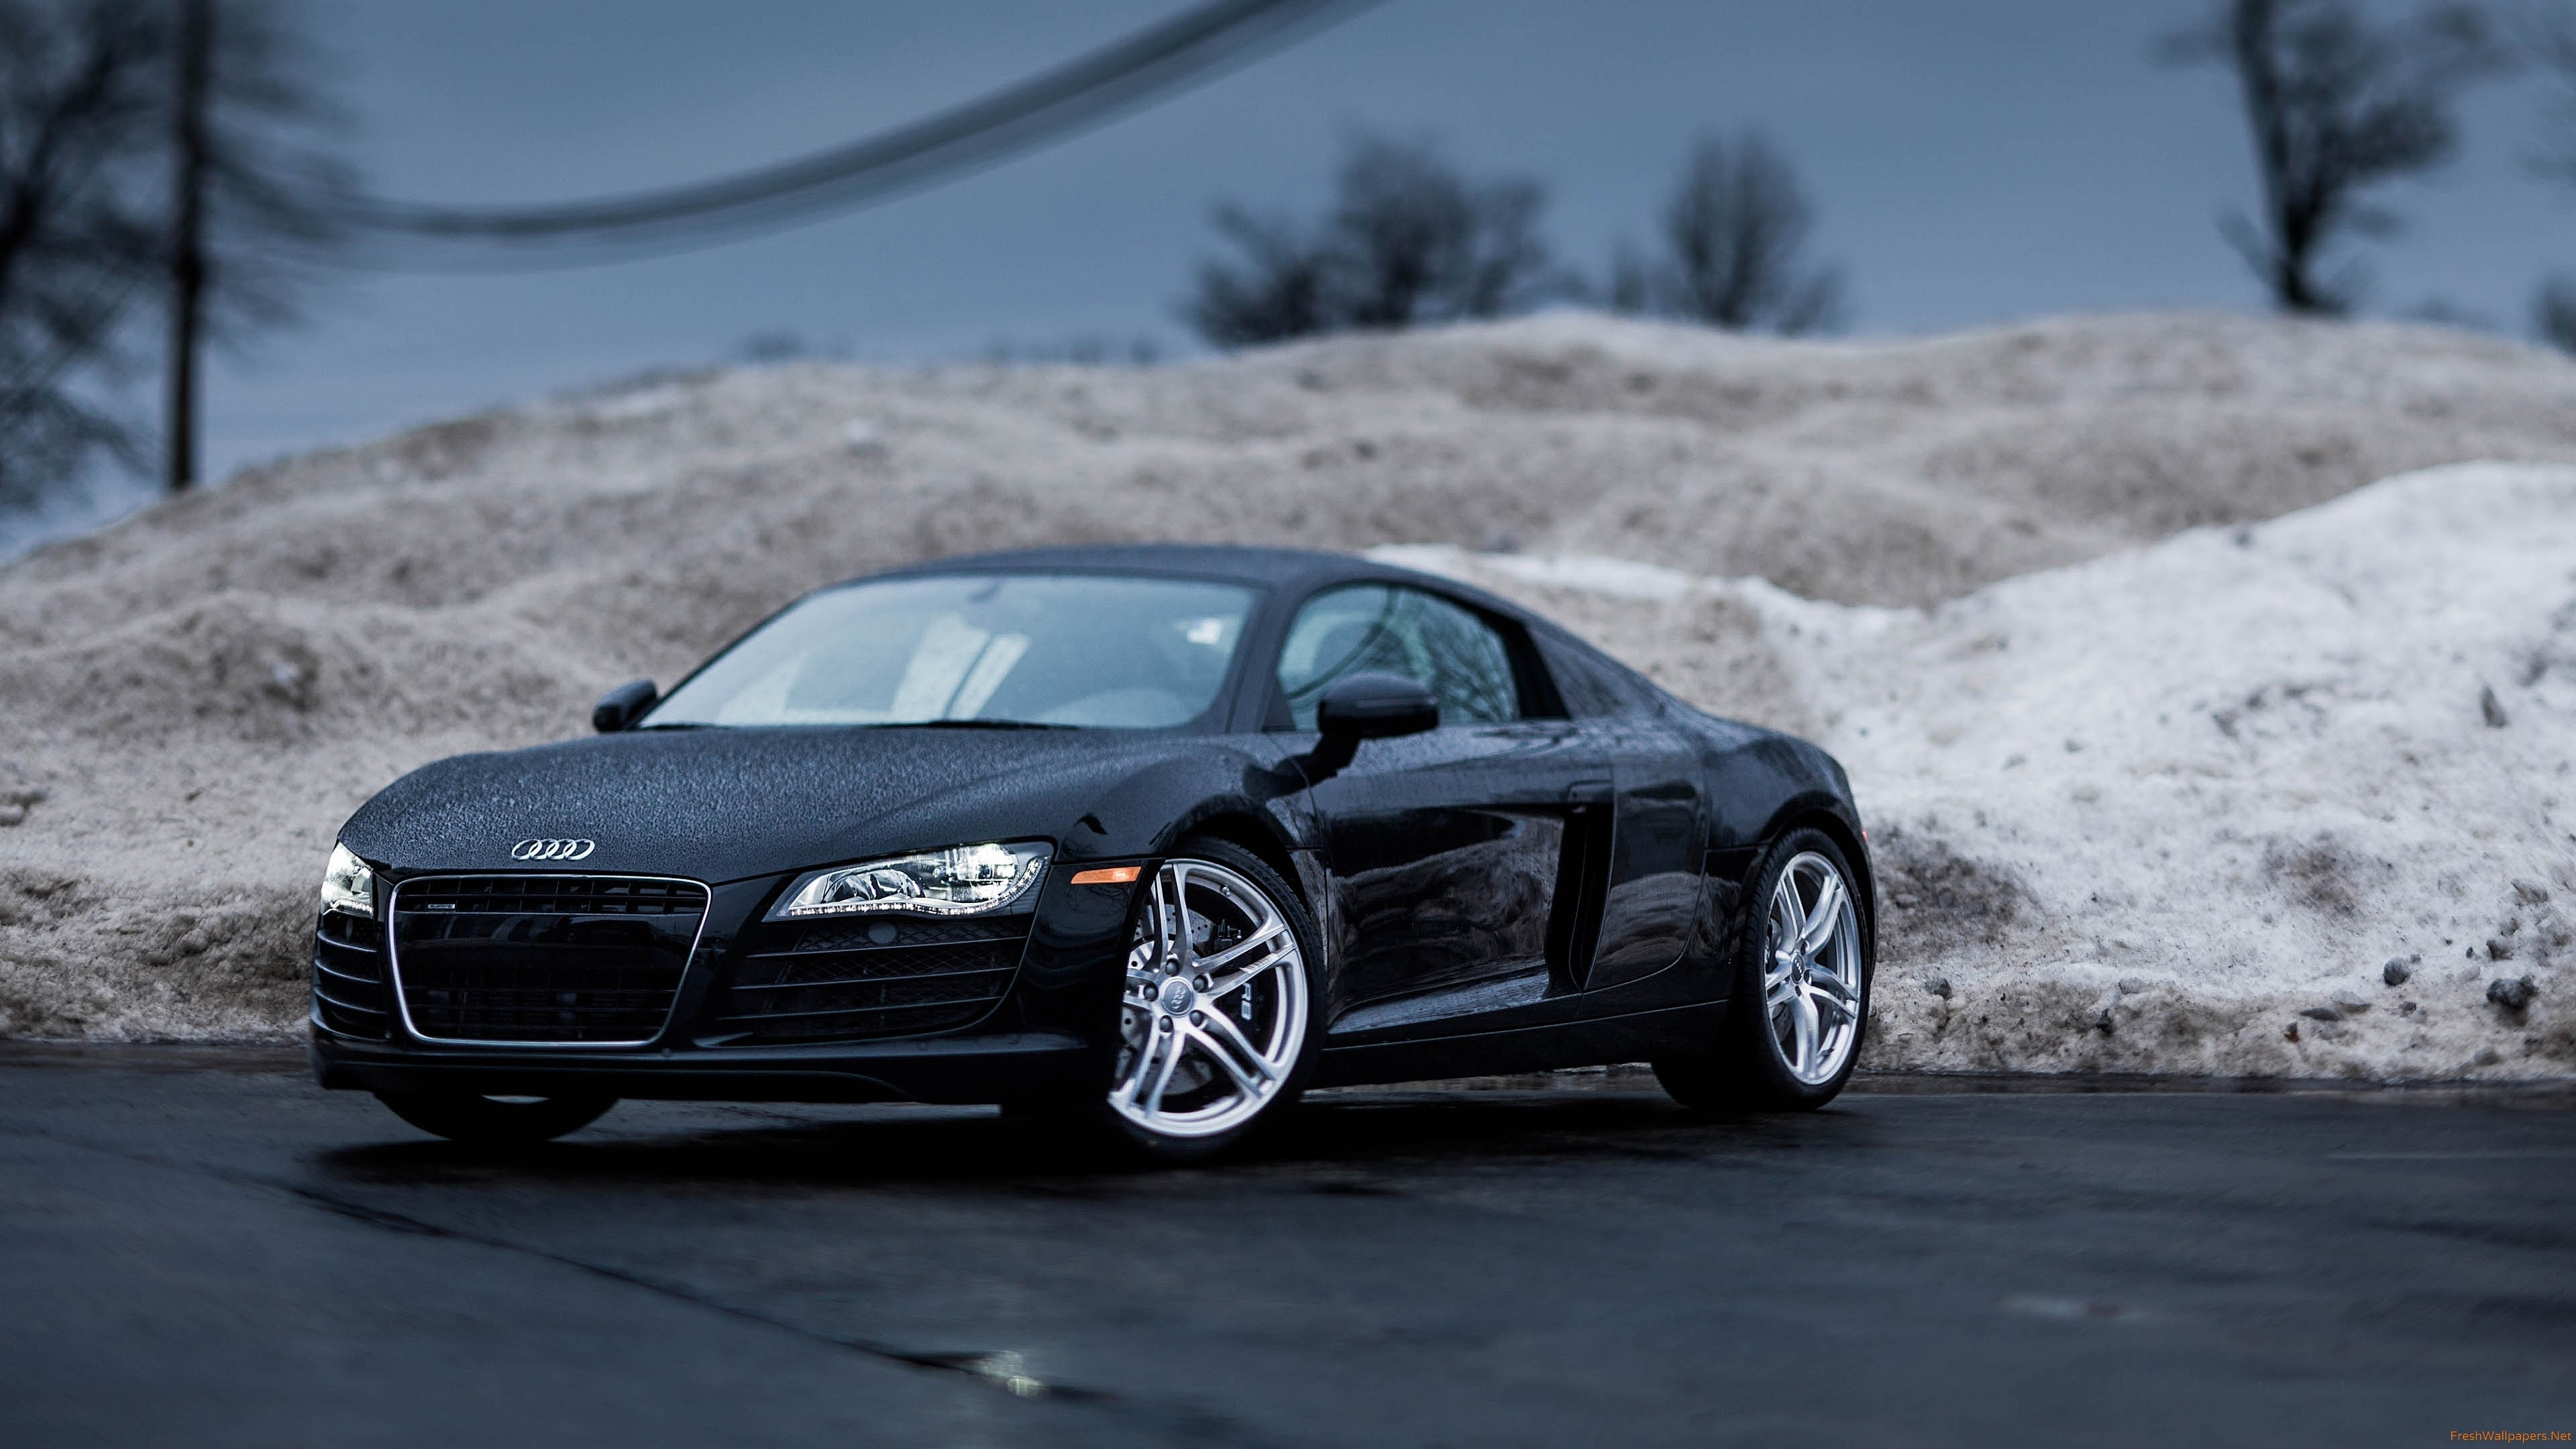 10 New Audi R8 Matte Black Wallpaper FULL HD 1080p For PC Desktop